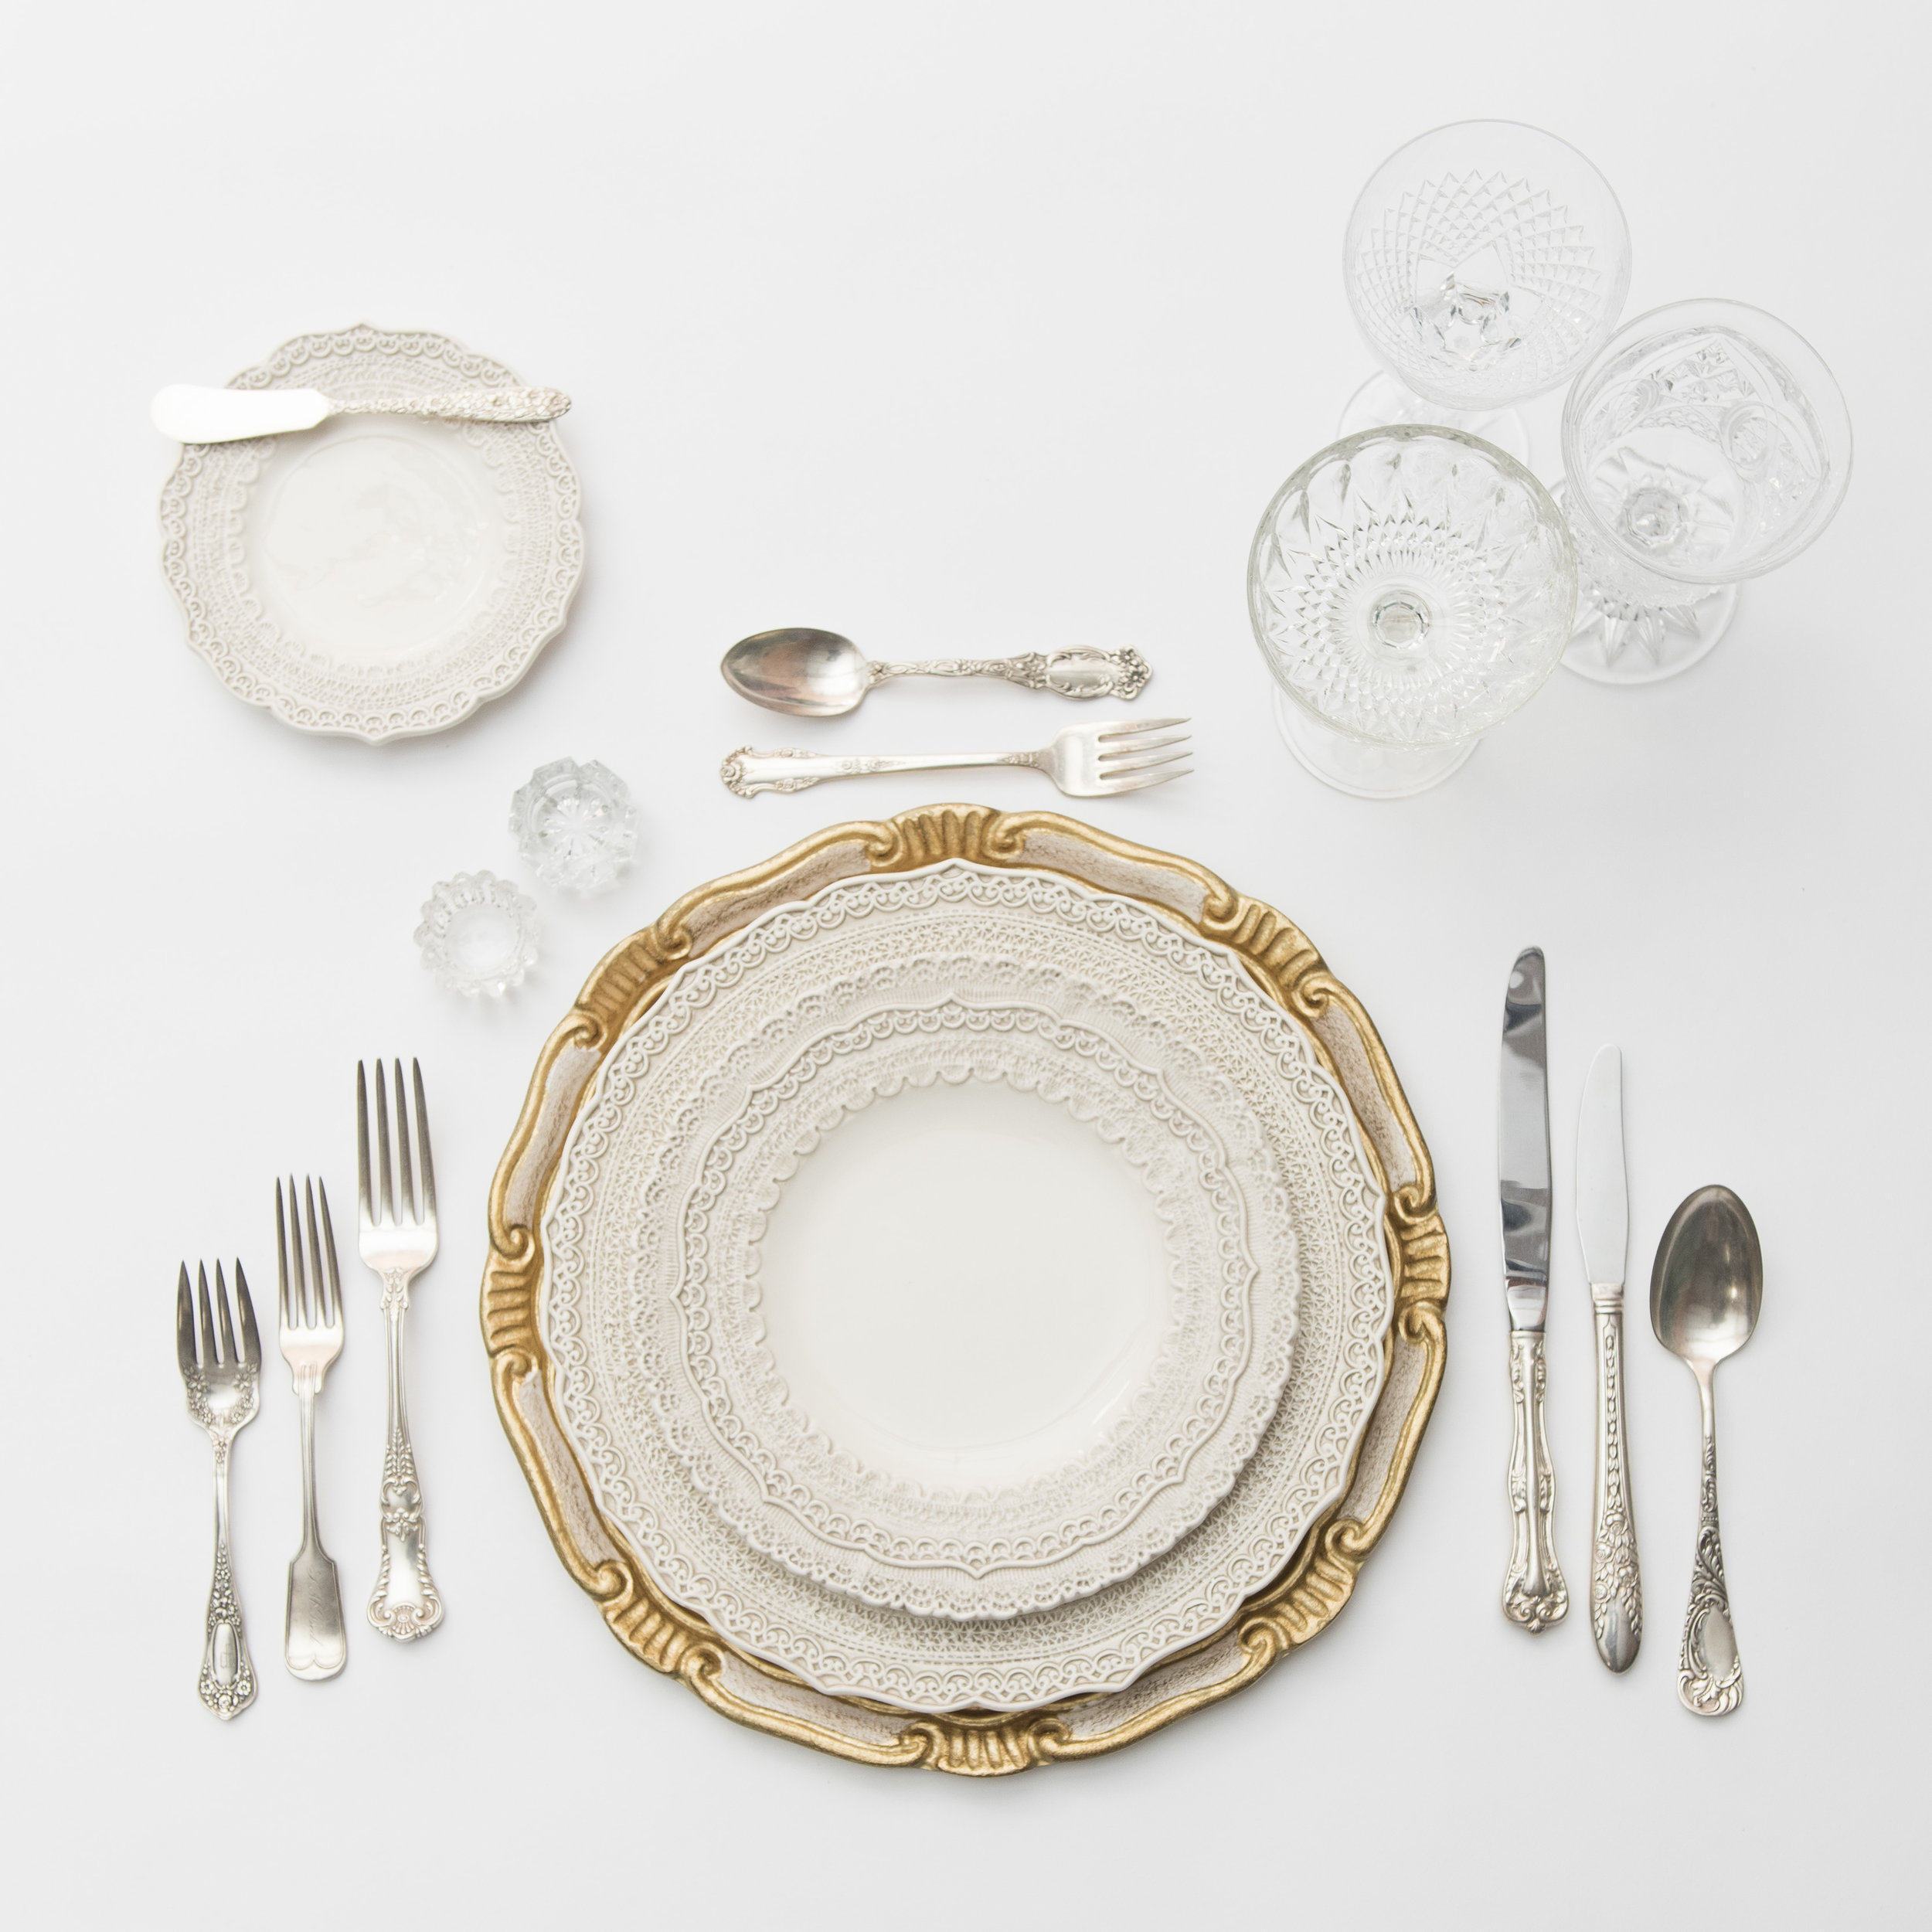 RENT: Florentine Chargers in White/Gold + Lace Dinnerware in White + Antique Silver Flatware + Vintage Cut Crystal Goblets + Early American Pressed Glass Goblets + Vintage Champagne Coupes + Antique Crystal Salt Cellars  SHOP:Florentine Chargers in White/Gold + Lace Dinnerware in White